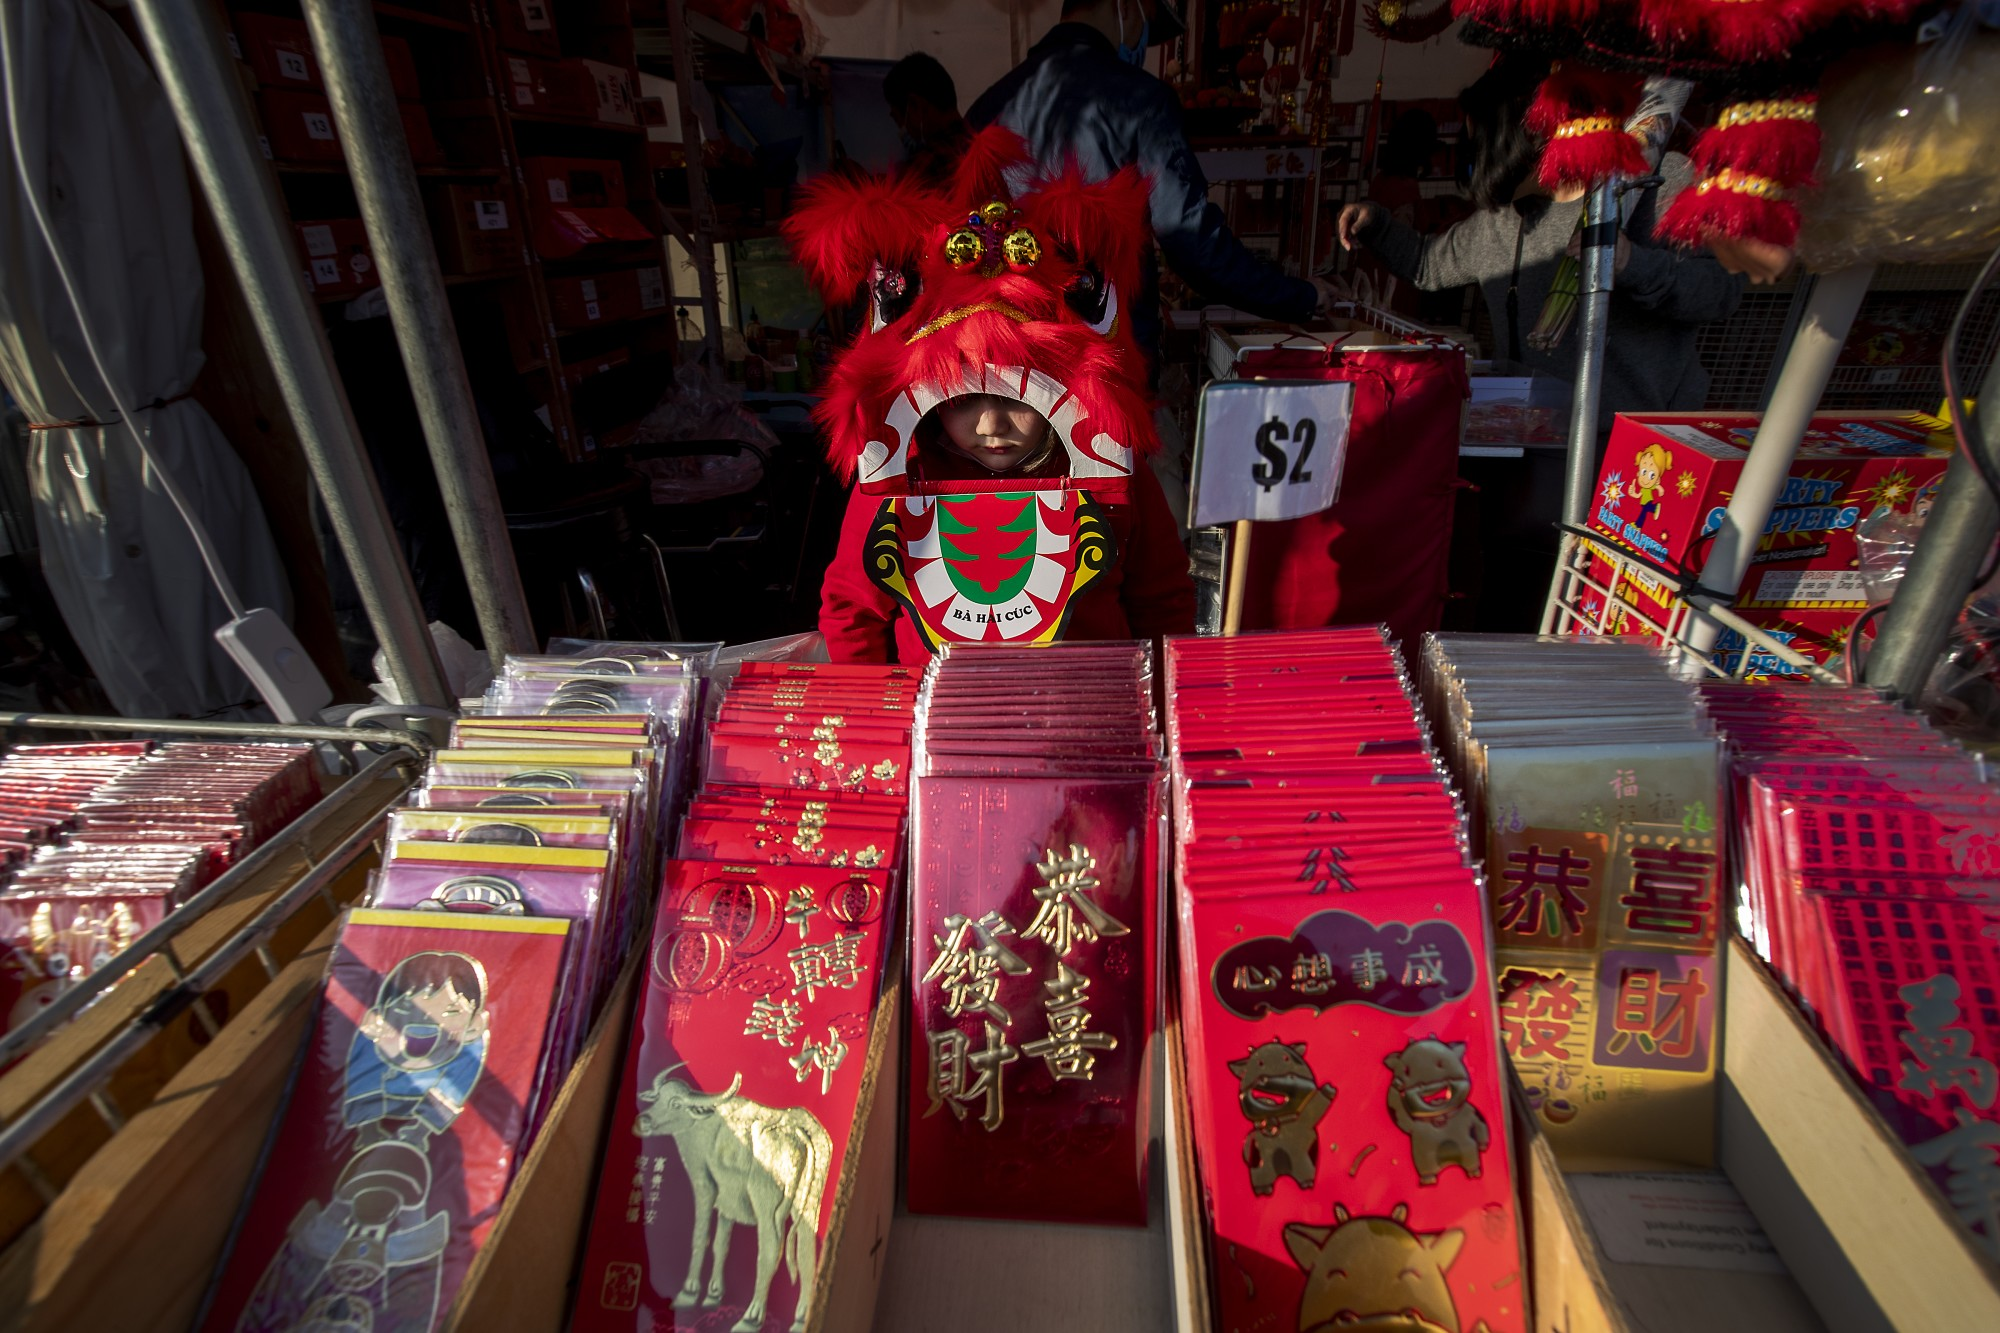 Midori Nguyen, 5, of Westminster wears a lion dance costume while looking over li xi, red envelopes for monetary gifts during holidays, at the Asian Garden Mall in Little Saigon in an undated photo.(Allen J. Schaben / Los Angeles Times)